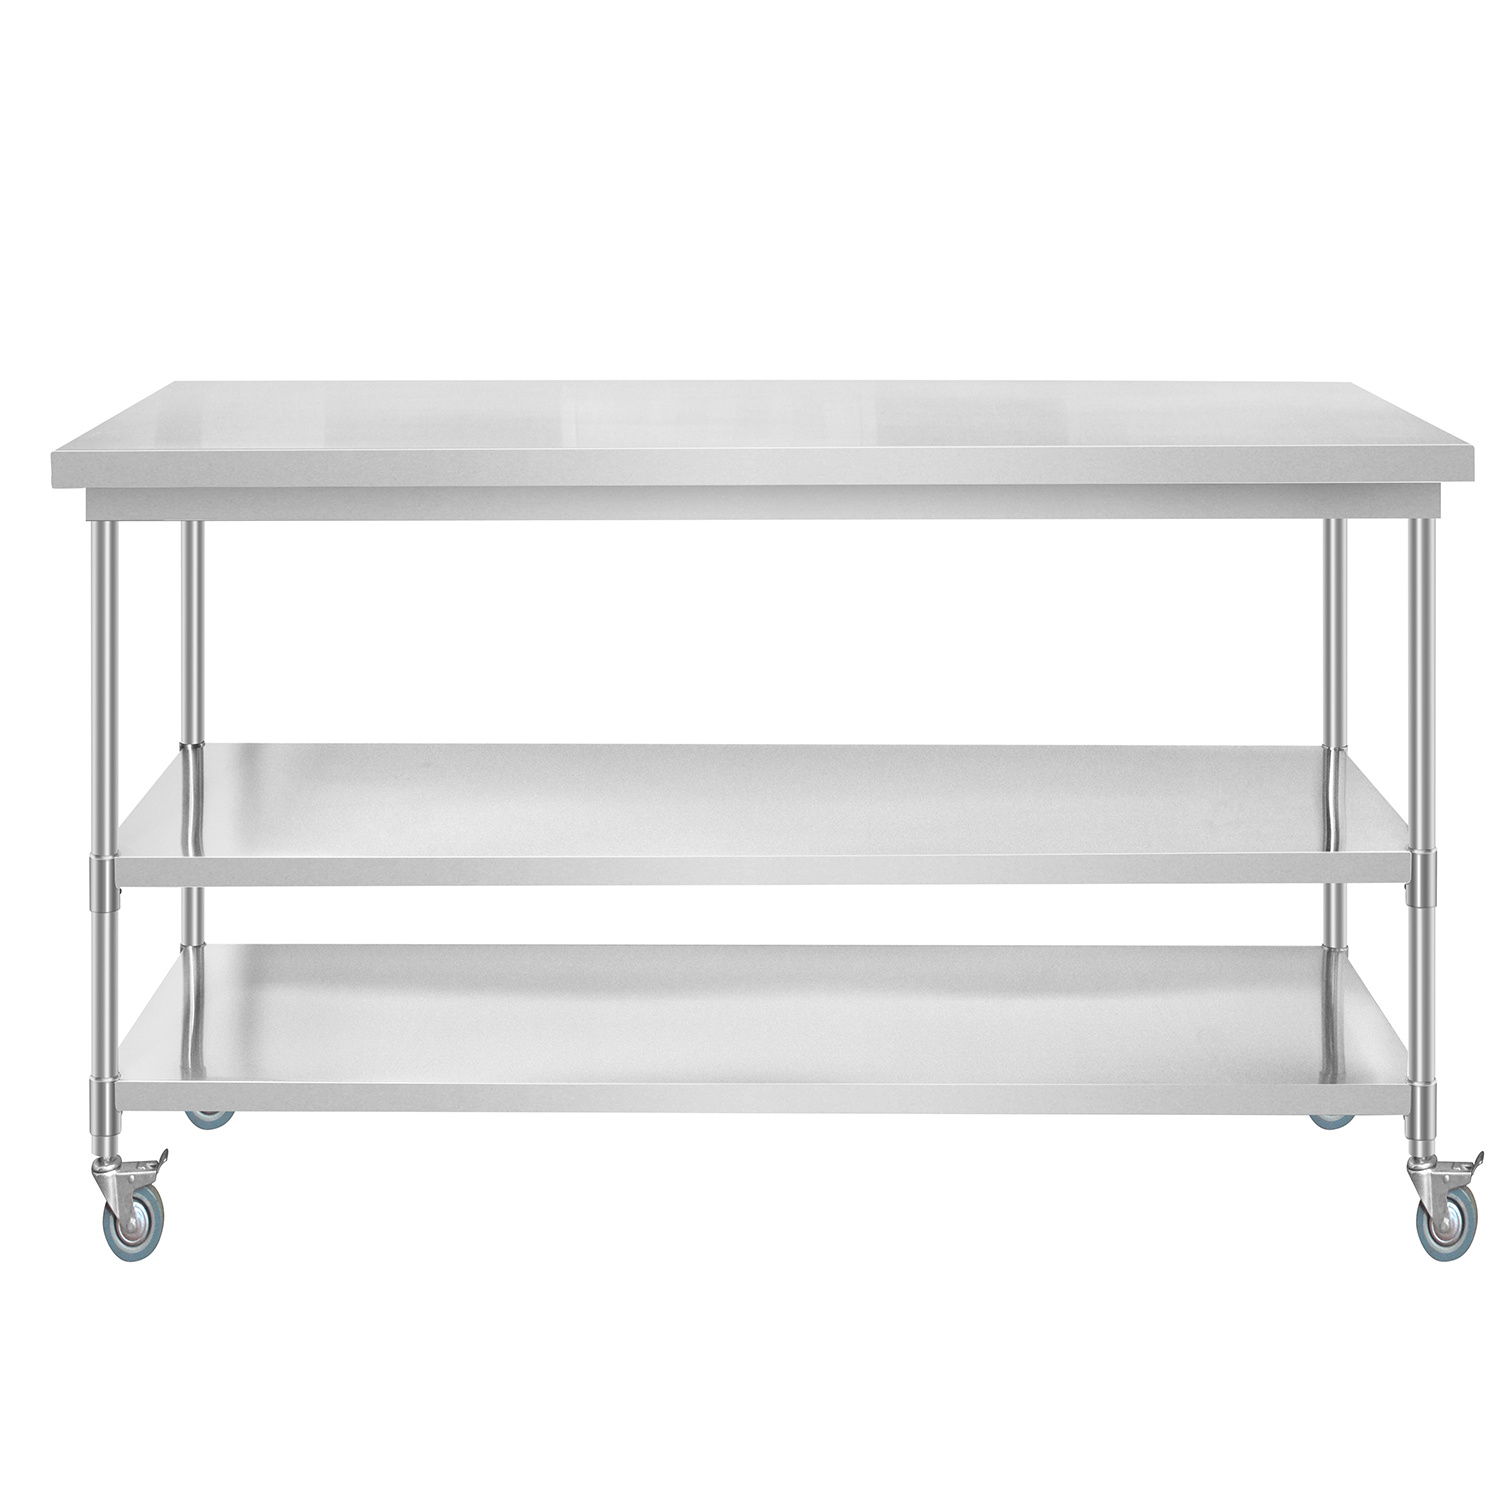 China Stainless Steel Hospital Work Table With Wheels China Hospital Table With Wheels Hospital Table Medical Supply